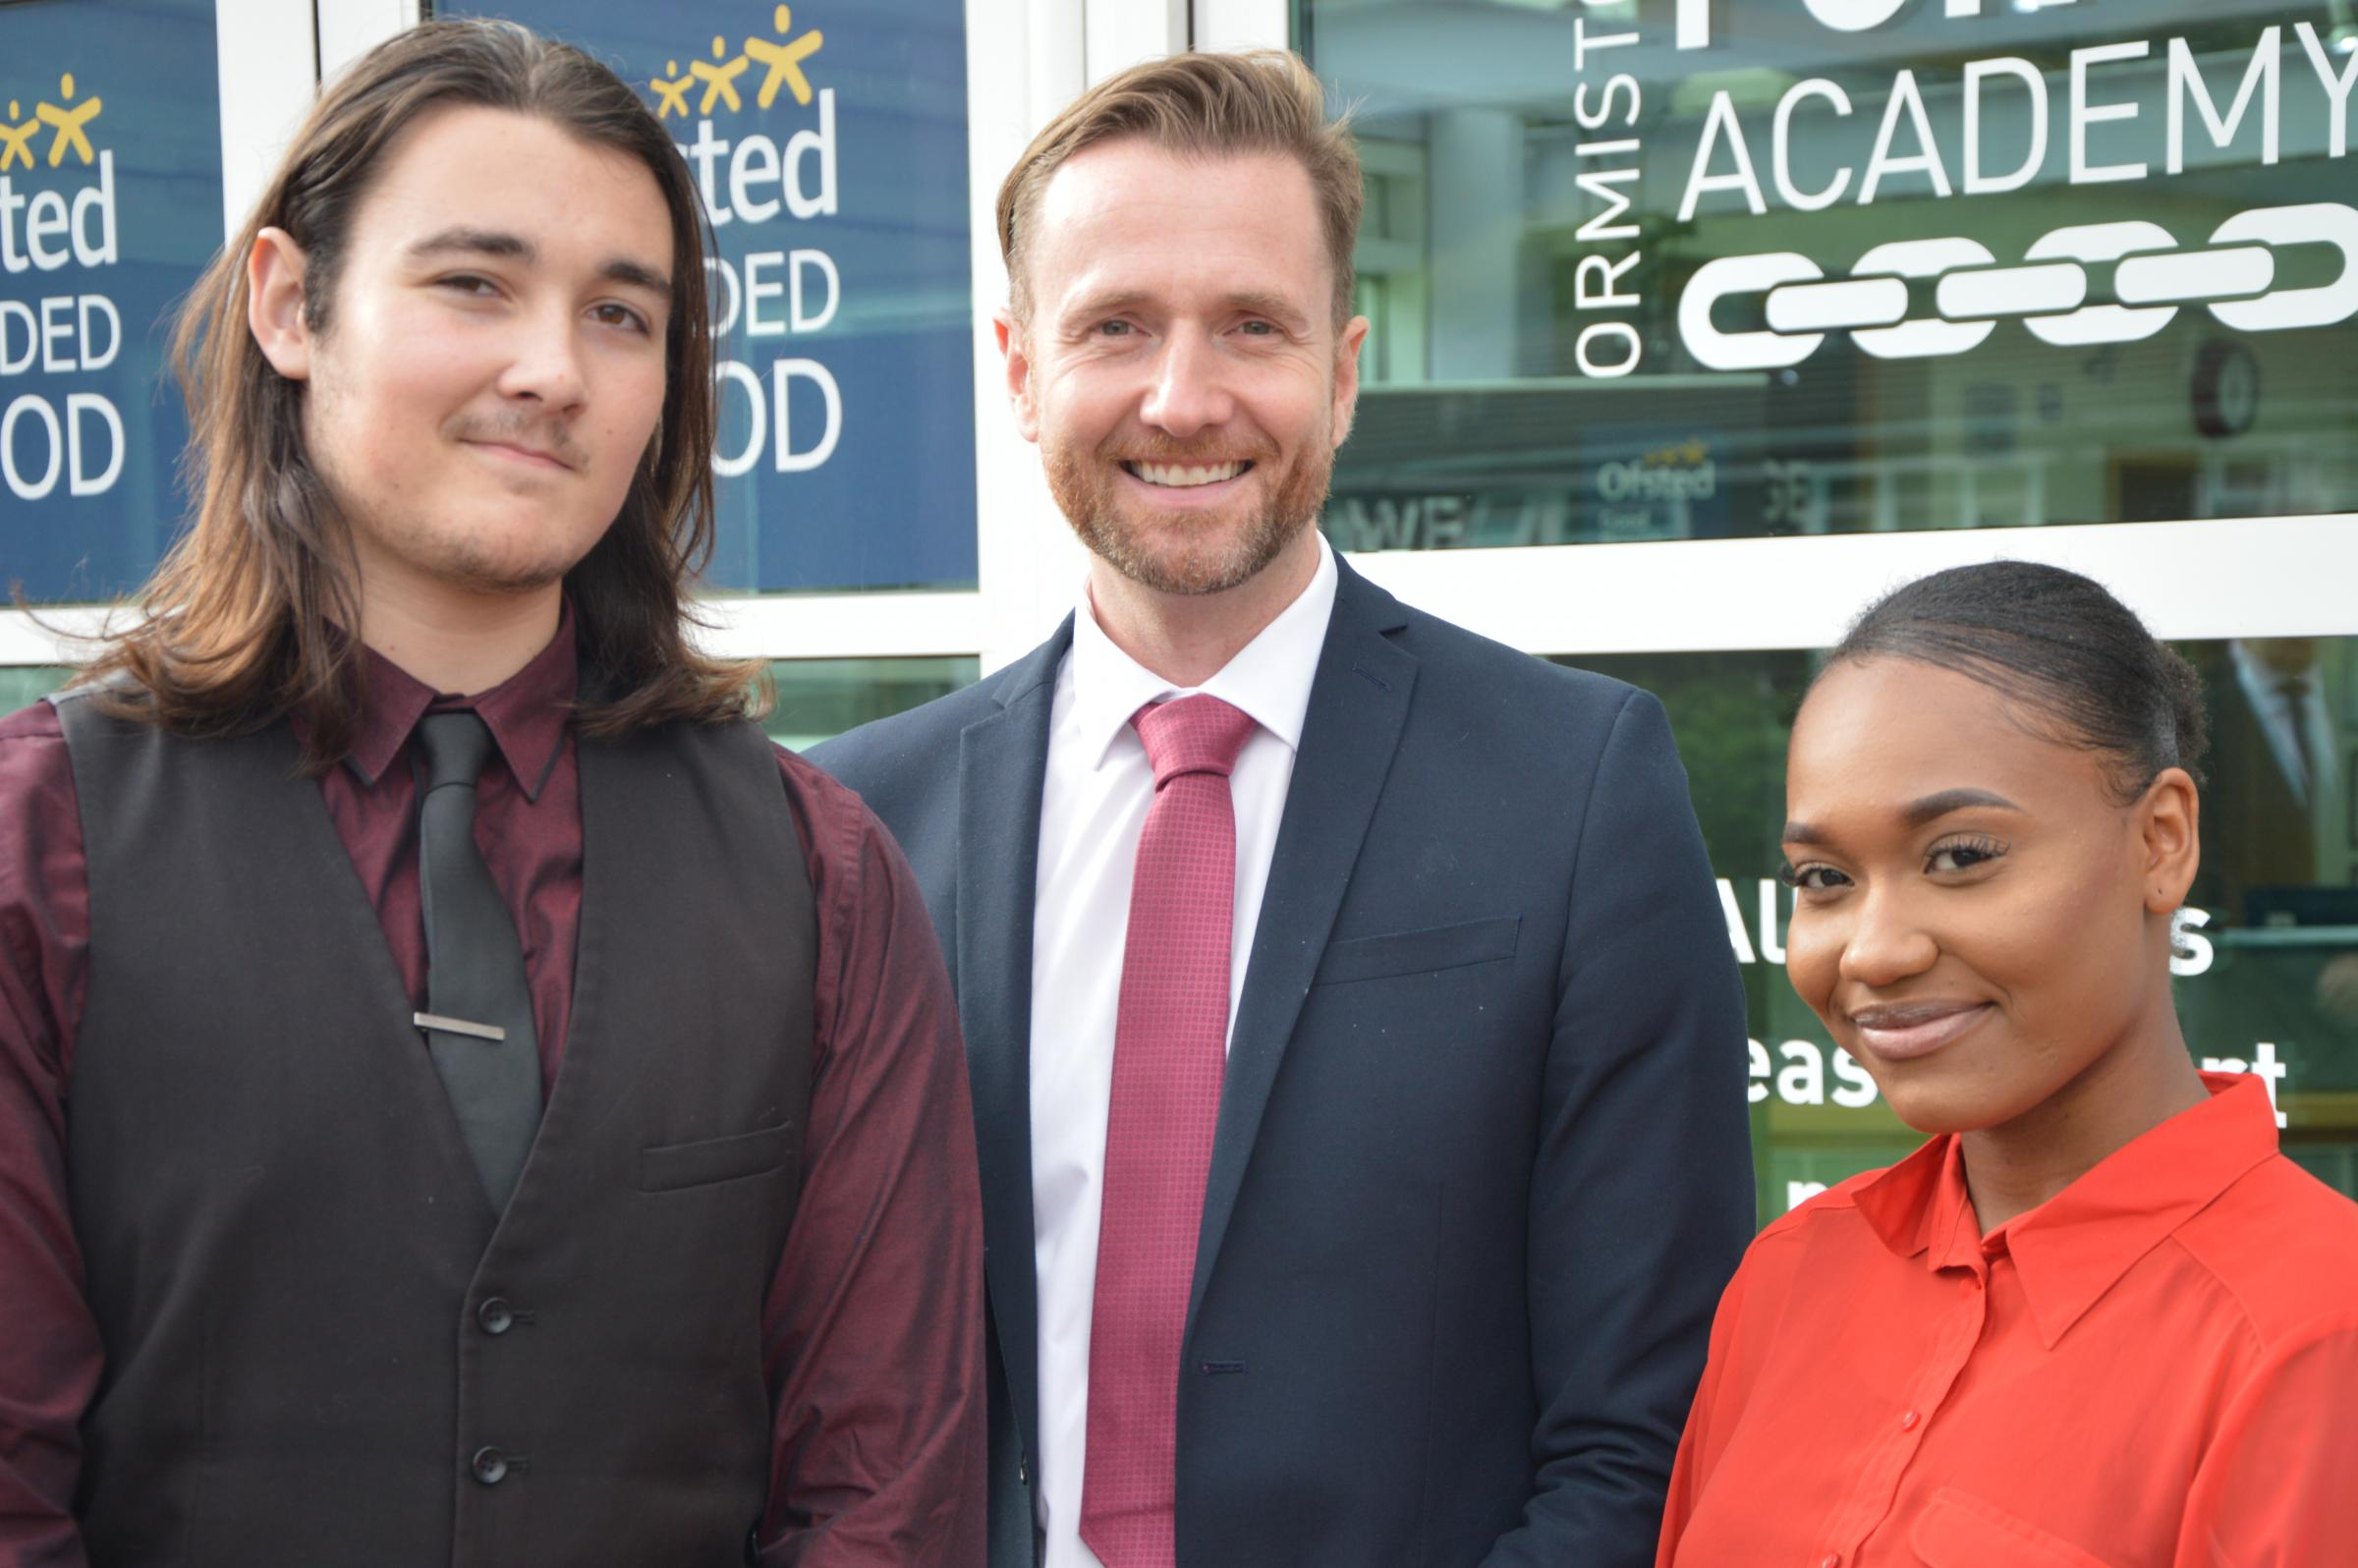 Ormiston Forge Academy's Cameron Allen and Divine Matondo with assistant principal Darren Grimes.